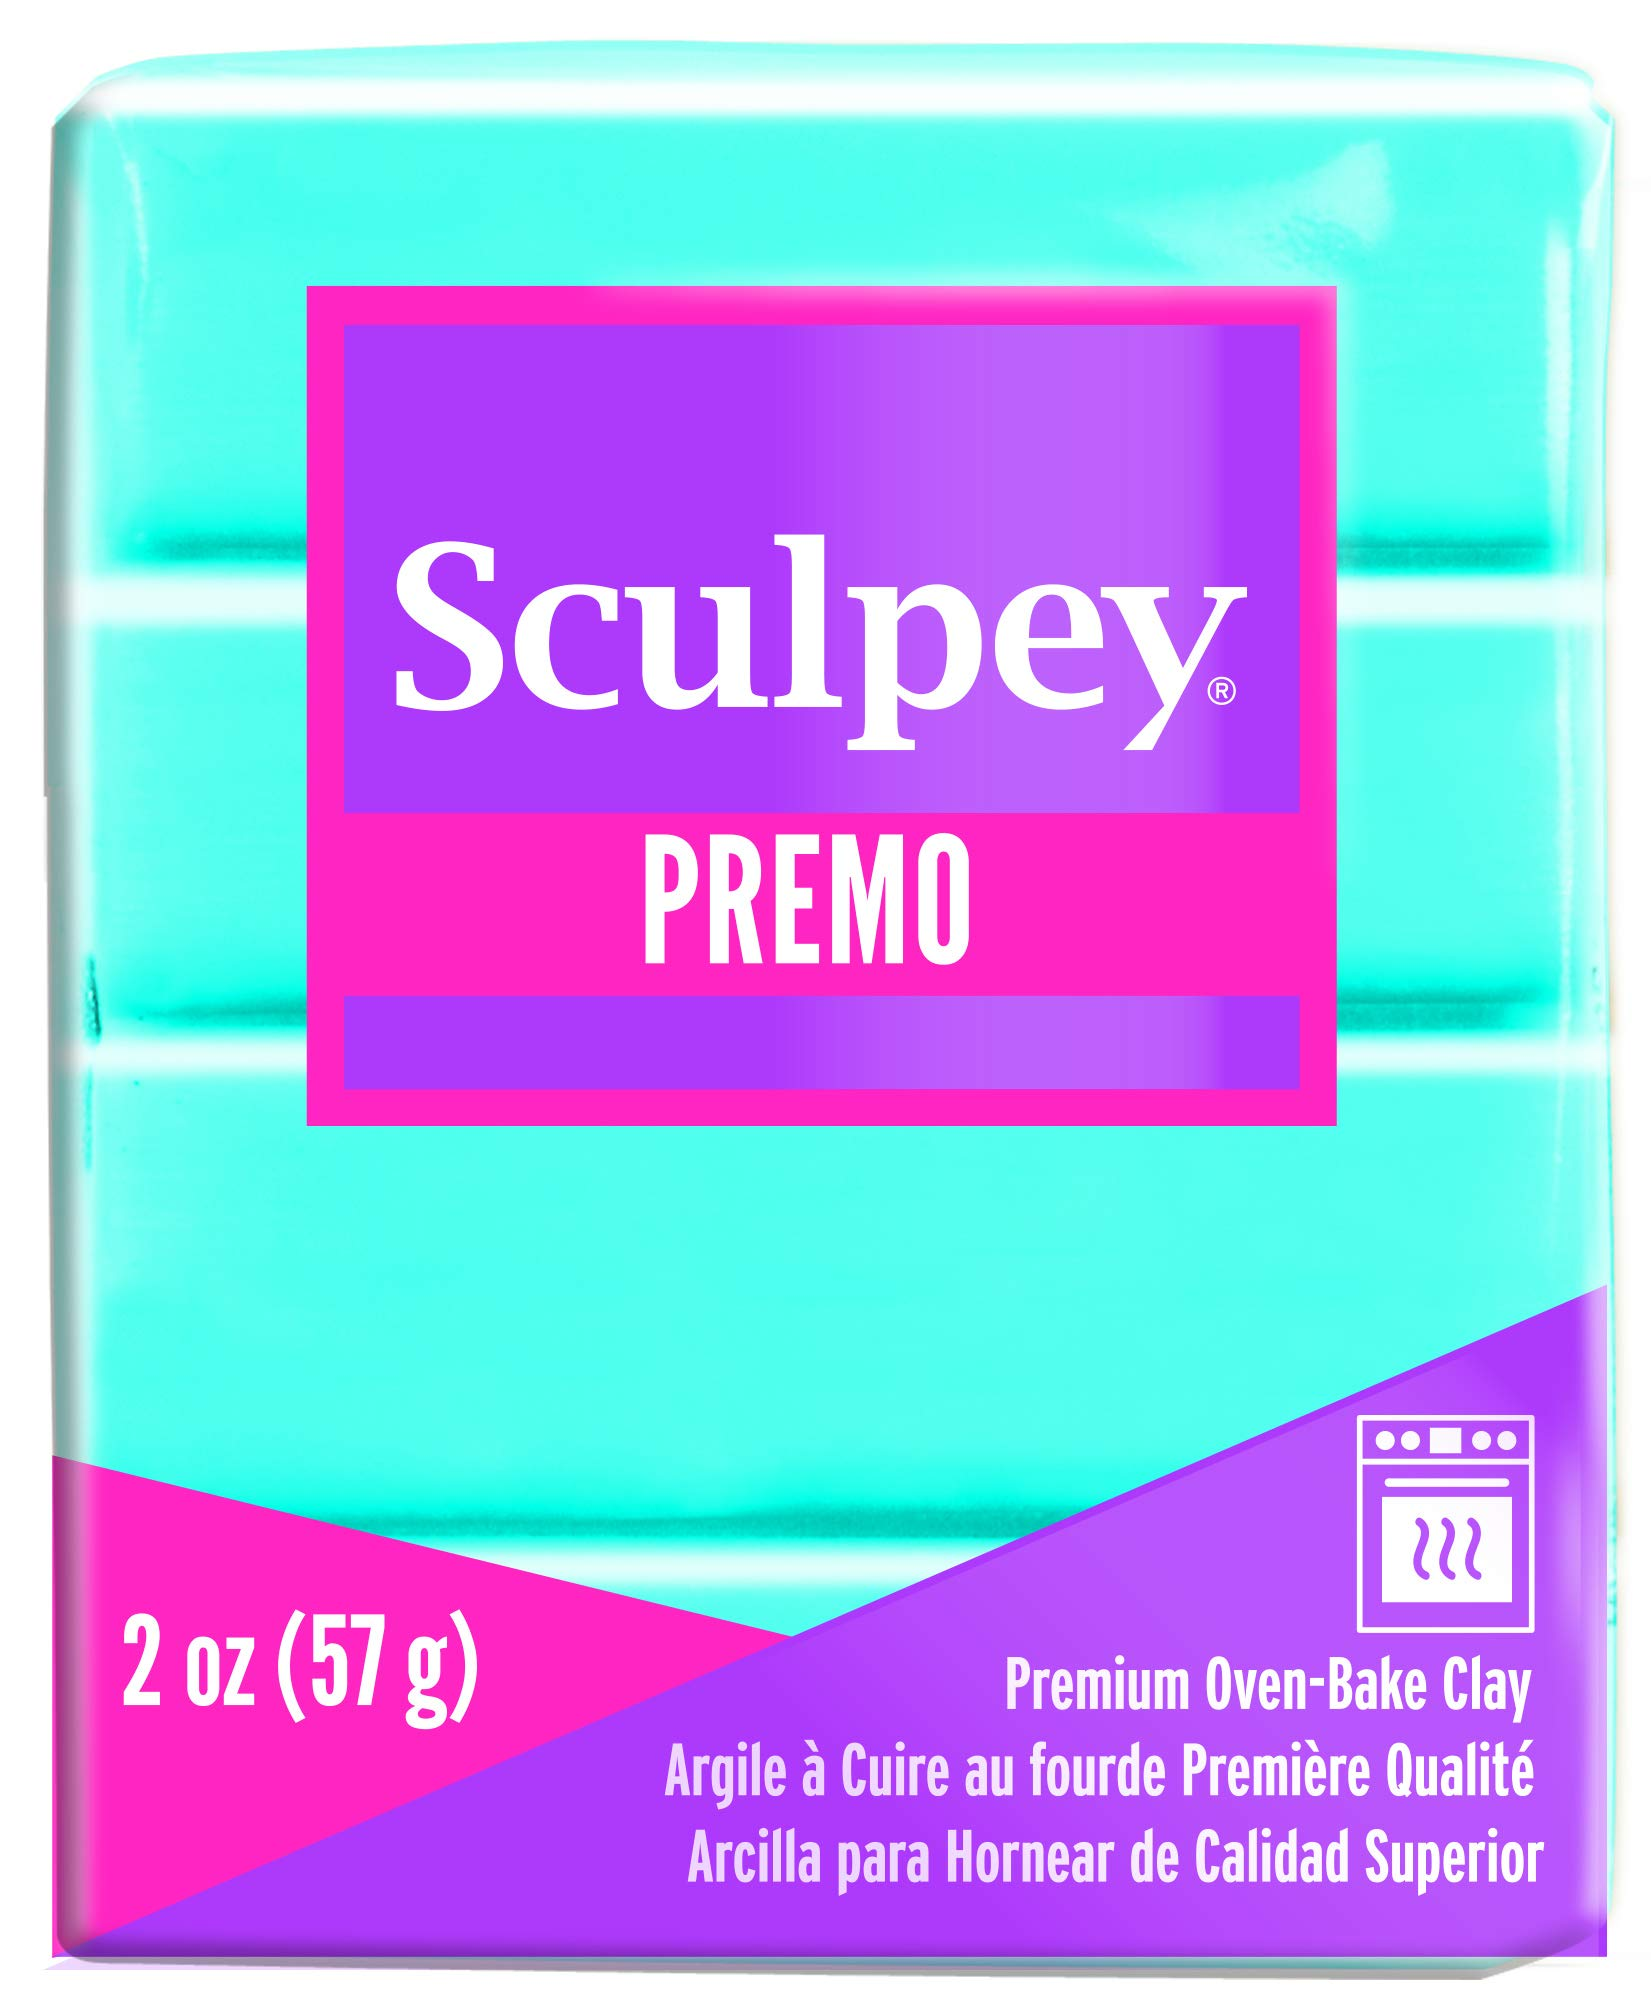 Sculpey Premo Polymer Oven-Bake Clay, Turquoise, Non Toxic, 2 oz. bar, Great for jewelry making, holiday, DIY, mixed media and home décor projects. Premium clay perfect for clayers and artists.